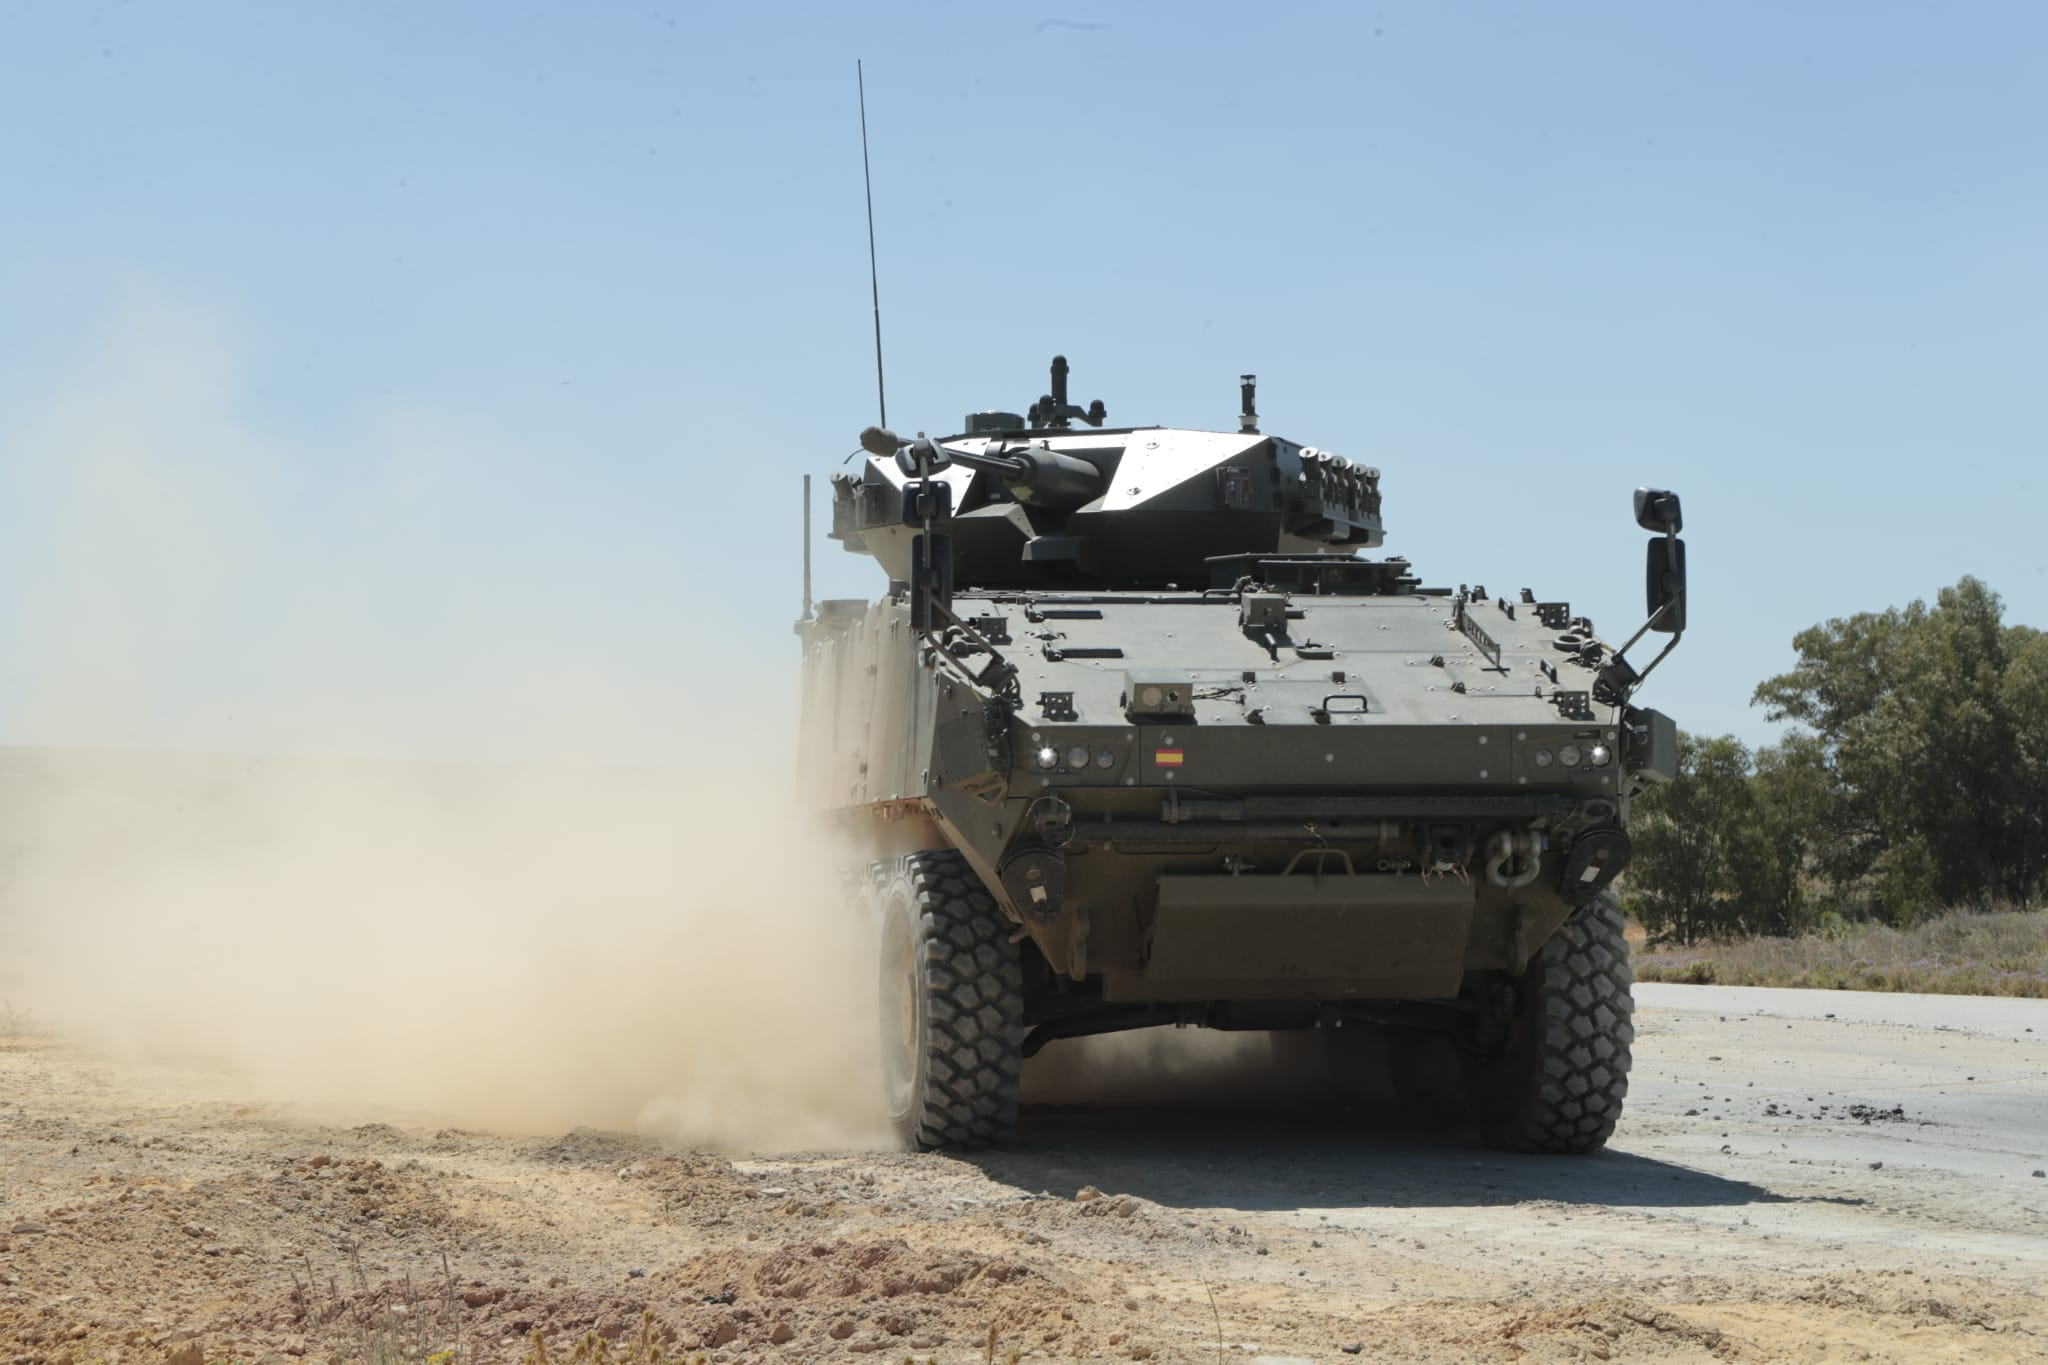 Spanish Army VCR 8x8 Wheeled Combat Vehicles Demonstrator Program